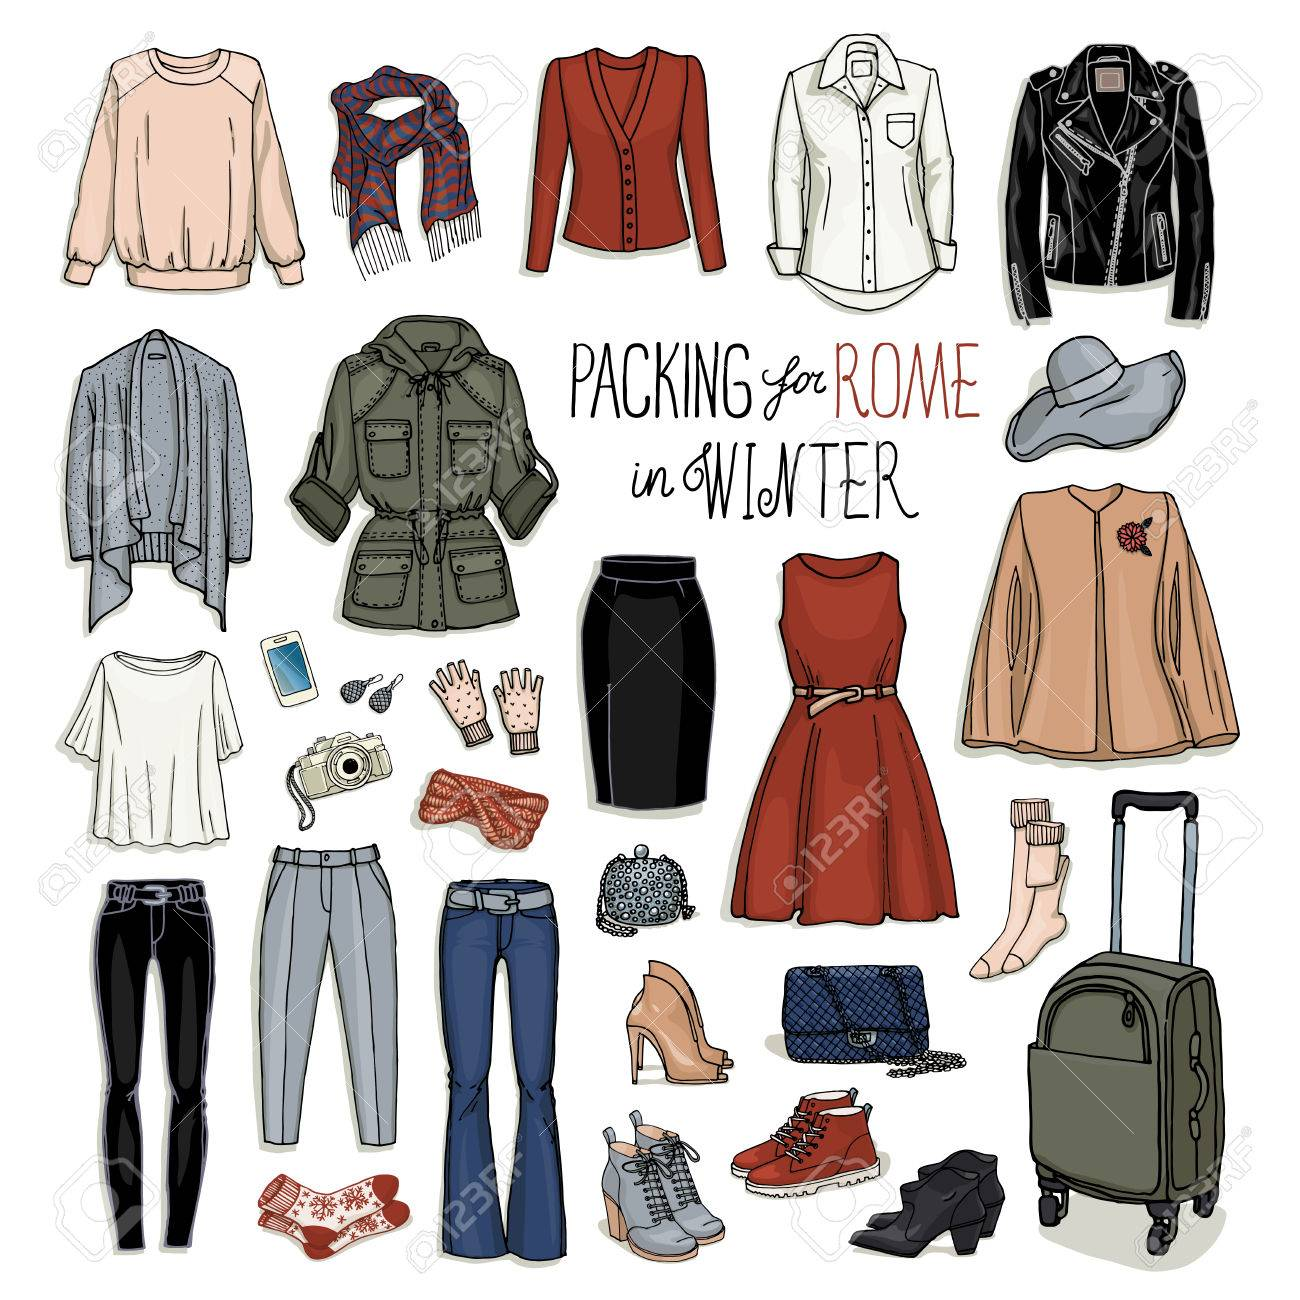 cb81b497589b Vector - Vector illustration of packing for Rome in winter. Sketch of  clothes and accessories for design. Female fashion collection set.